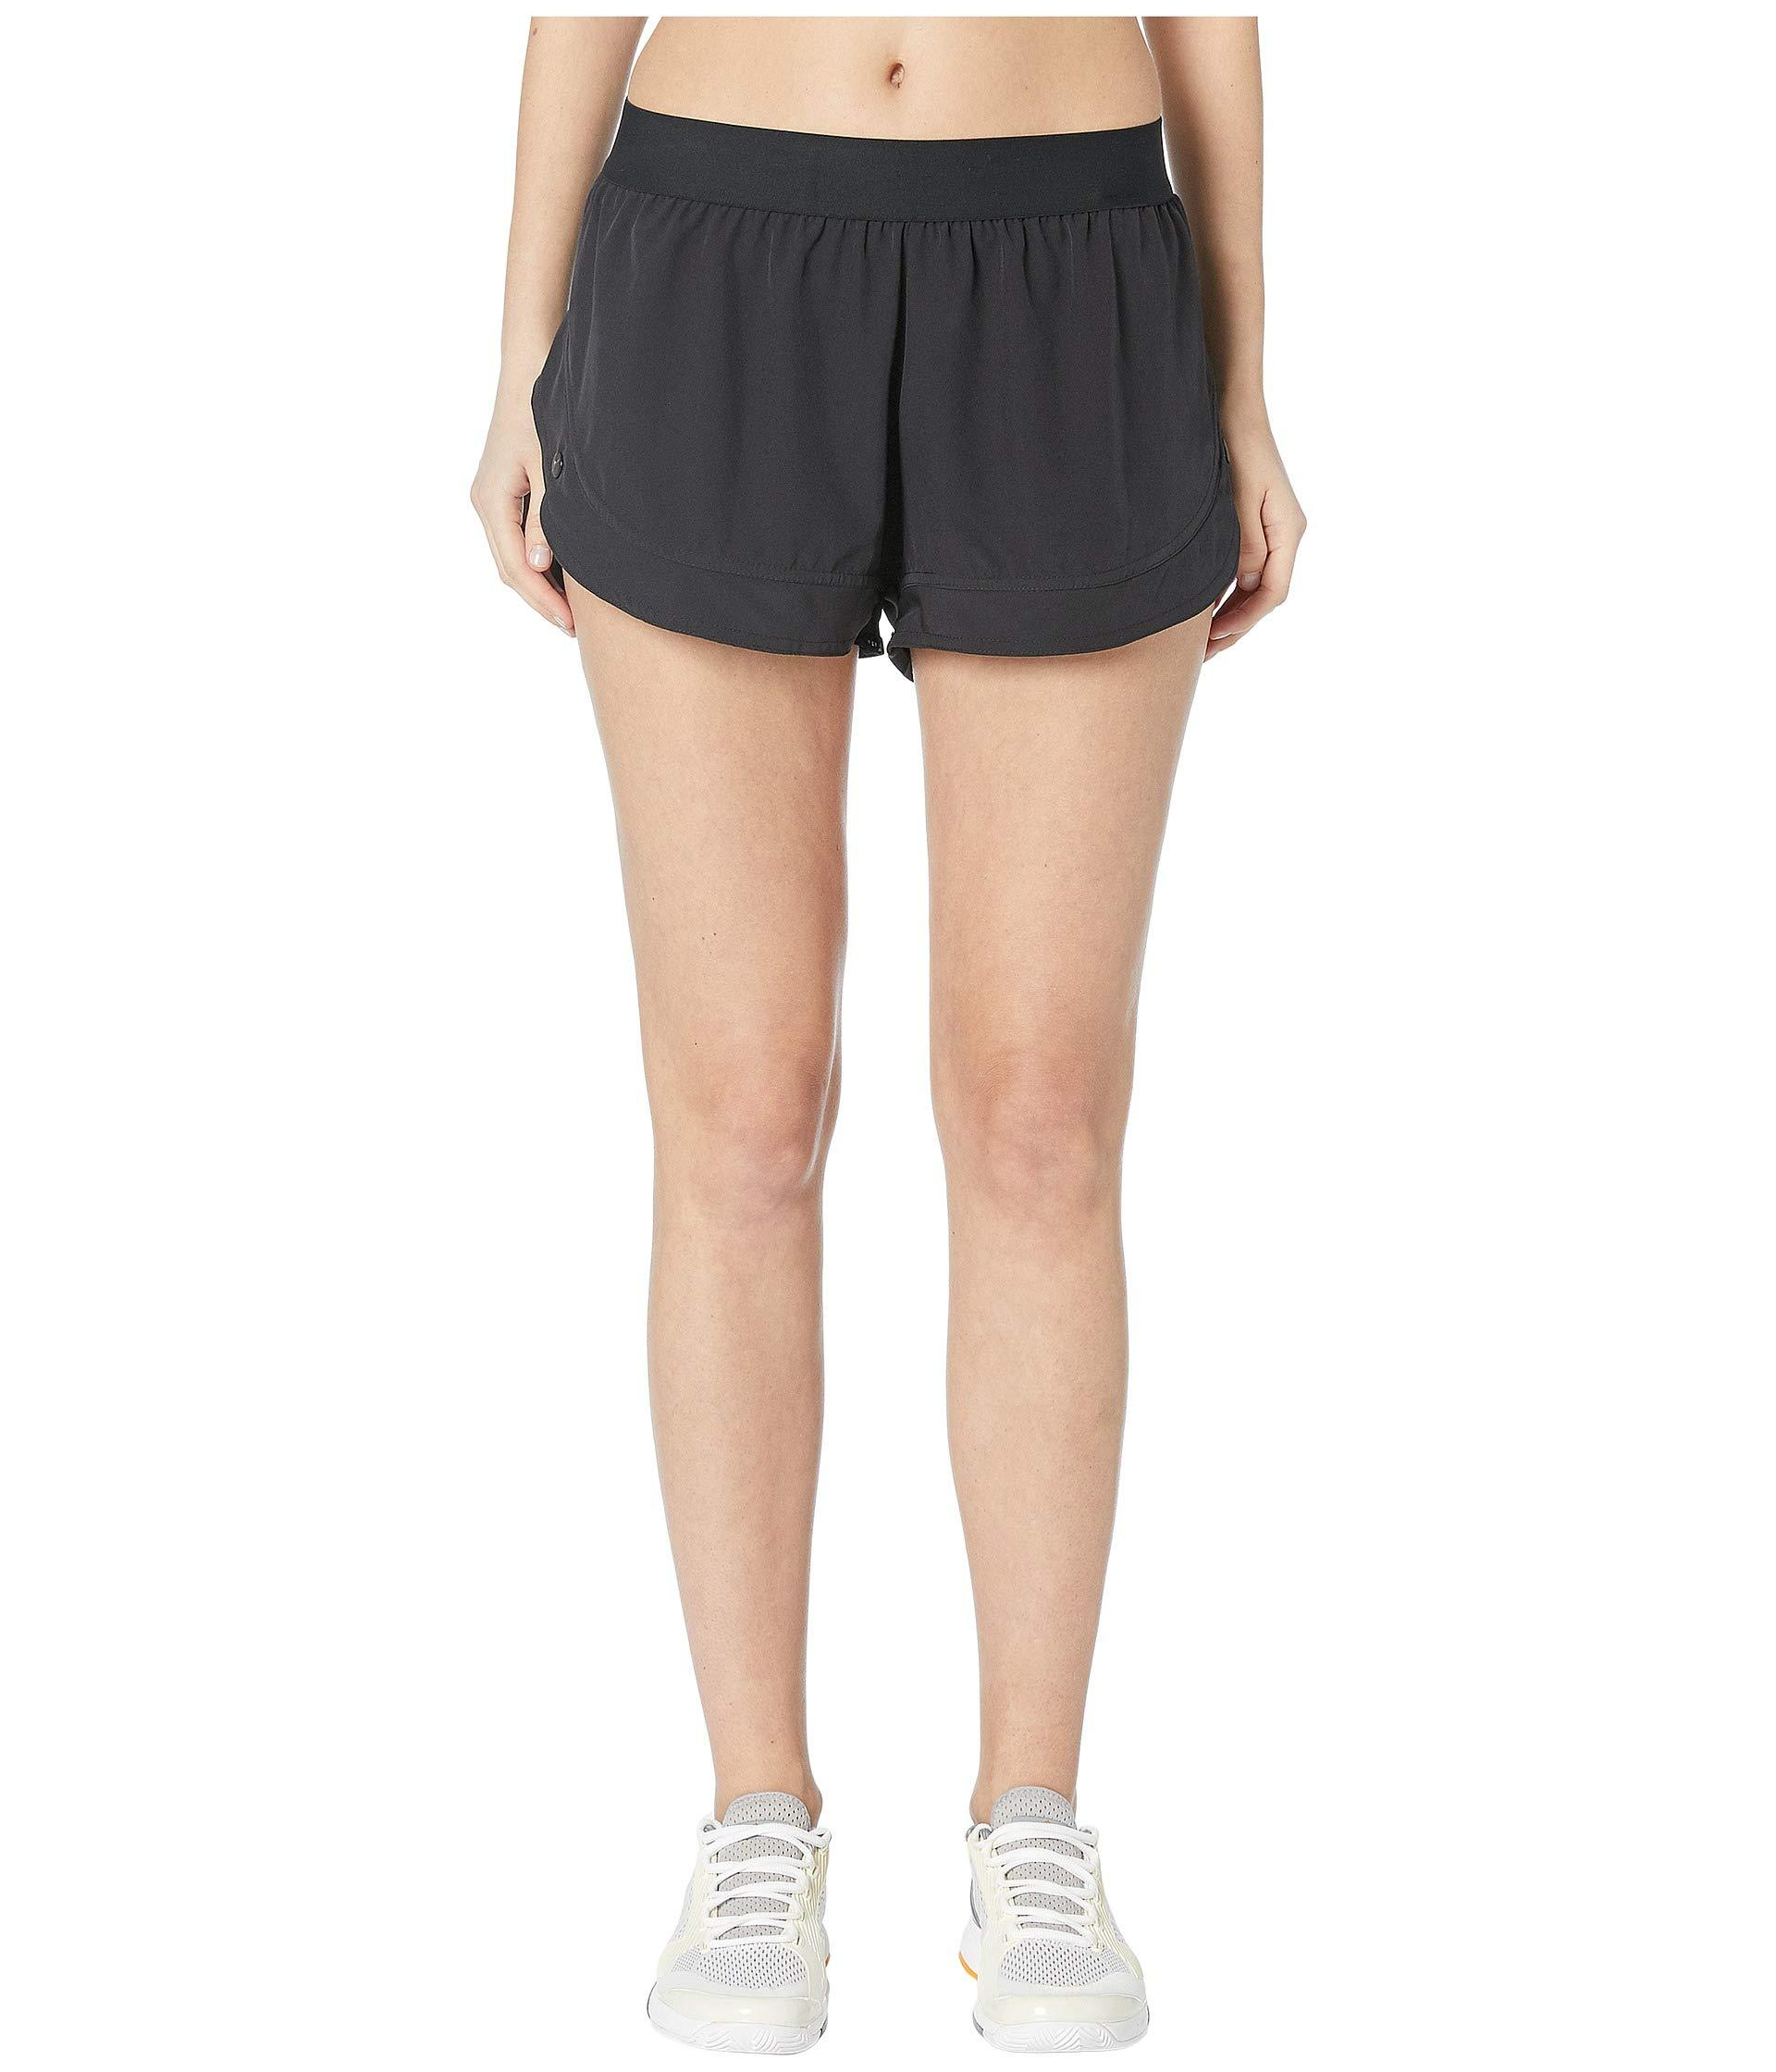 competitive price c0f5a ecc68 adidas By Stella McCartney. Performance Essentials Shorts Dt9335 (black) Women s  Shorts